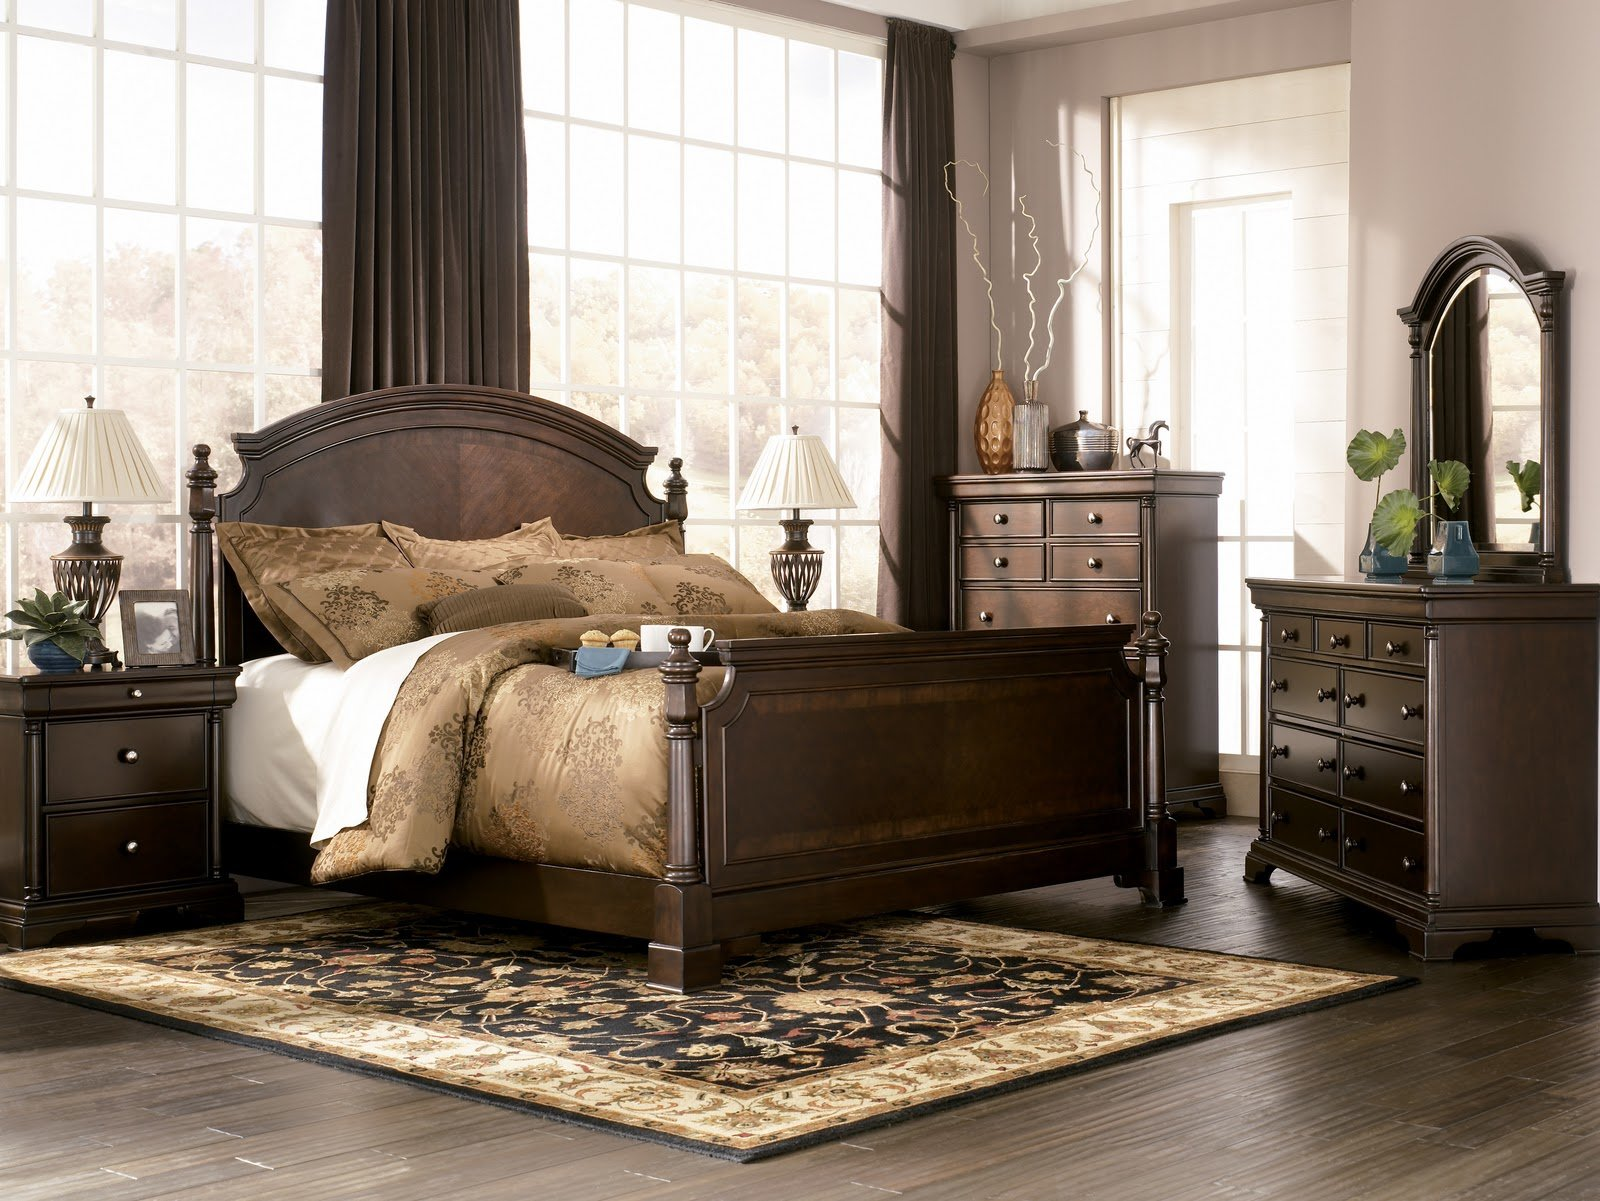 Best Bedroom Furniture Discounts November 2010 With Pictures